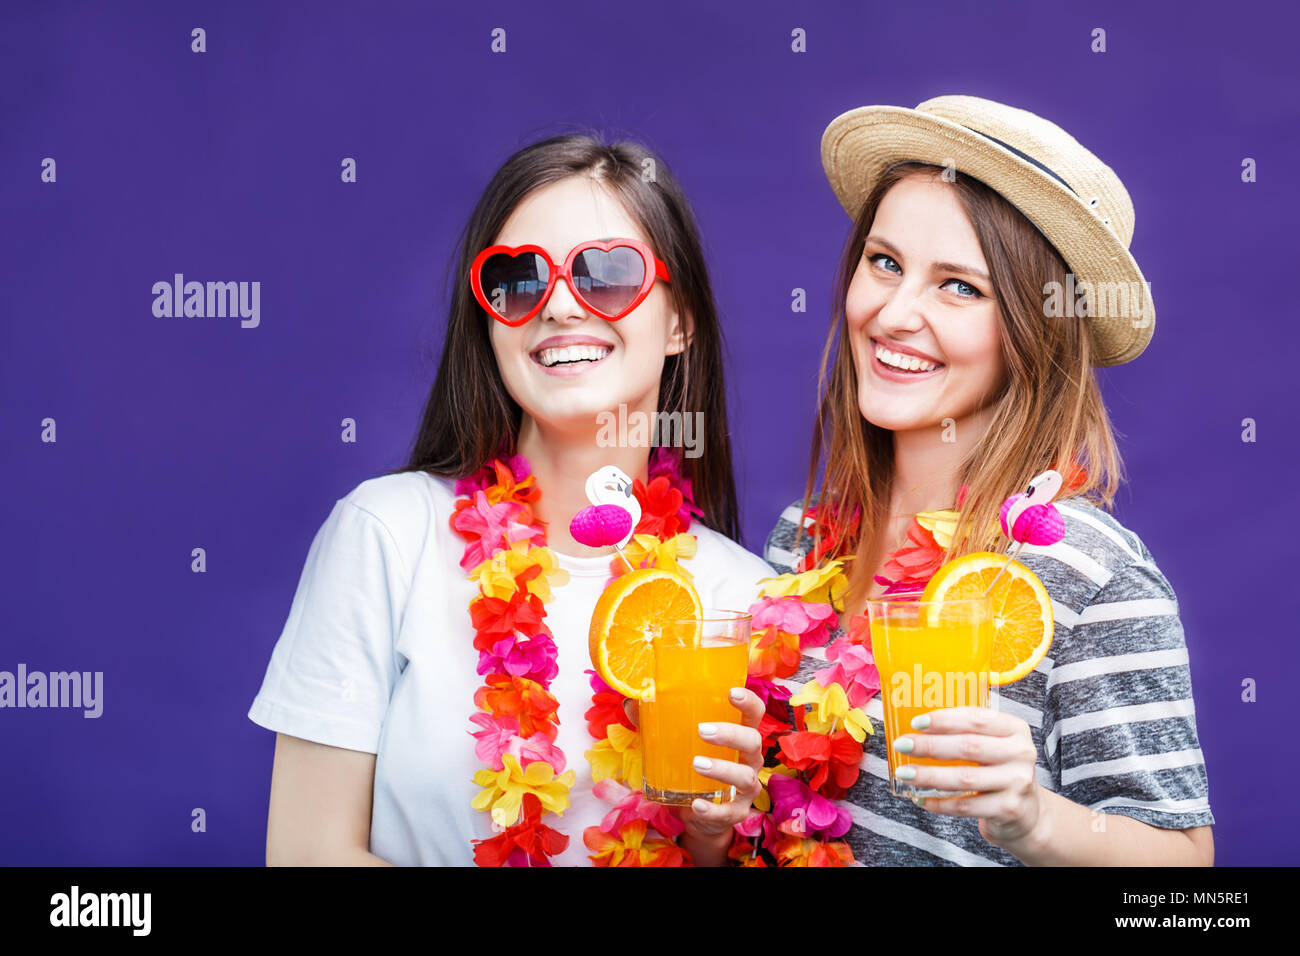 Two pretty smiling girls with lei on neck holds orange drinks before purple background - Stock Image